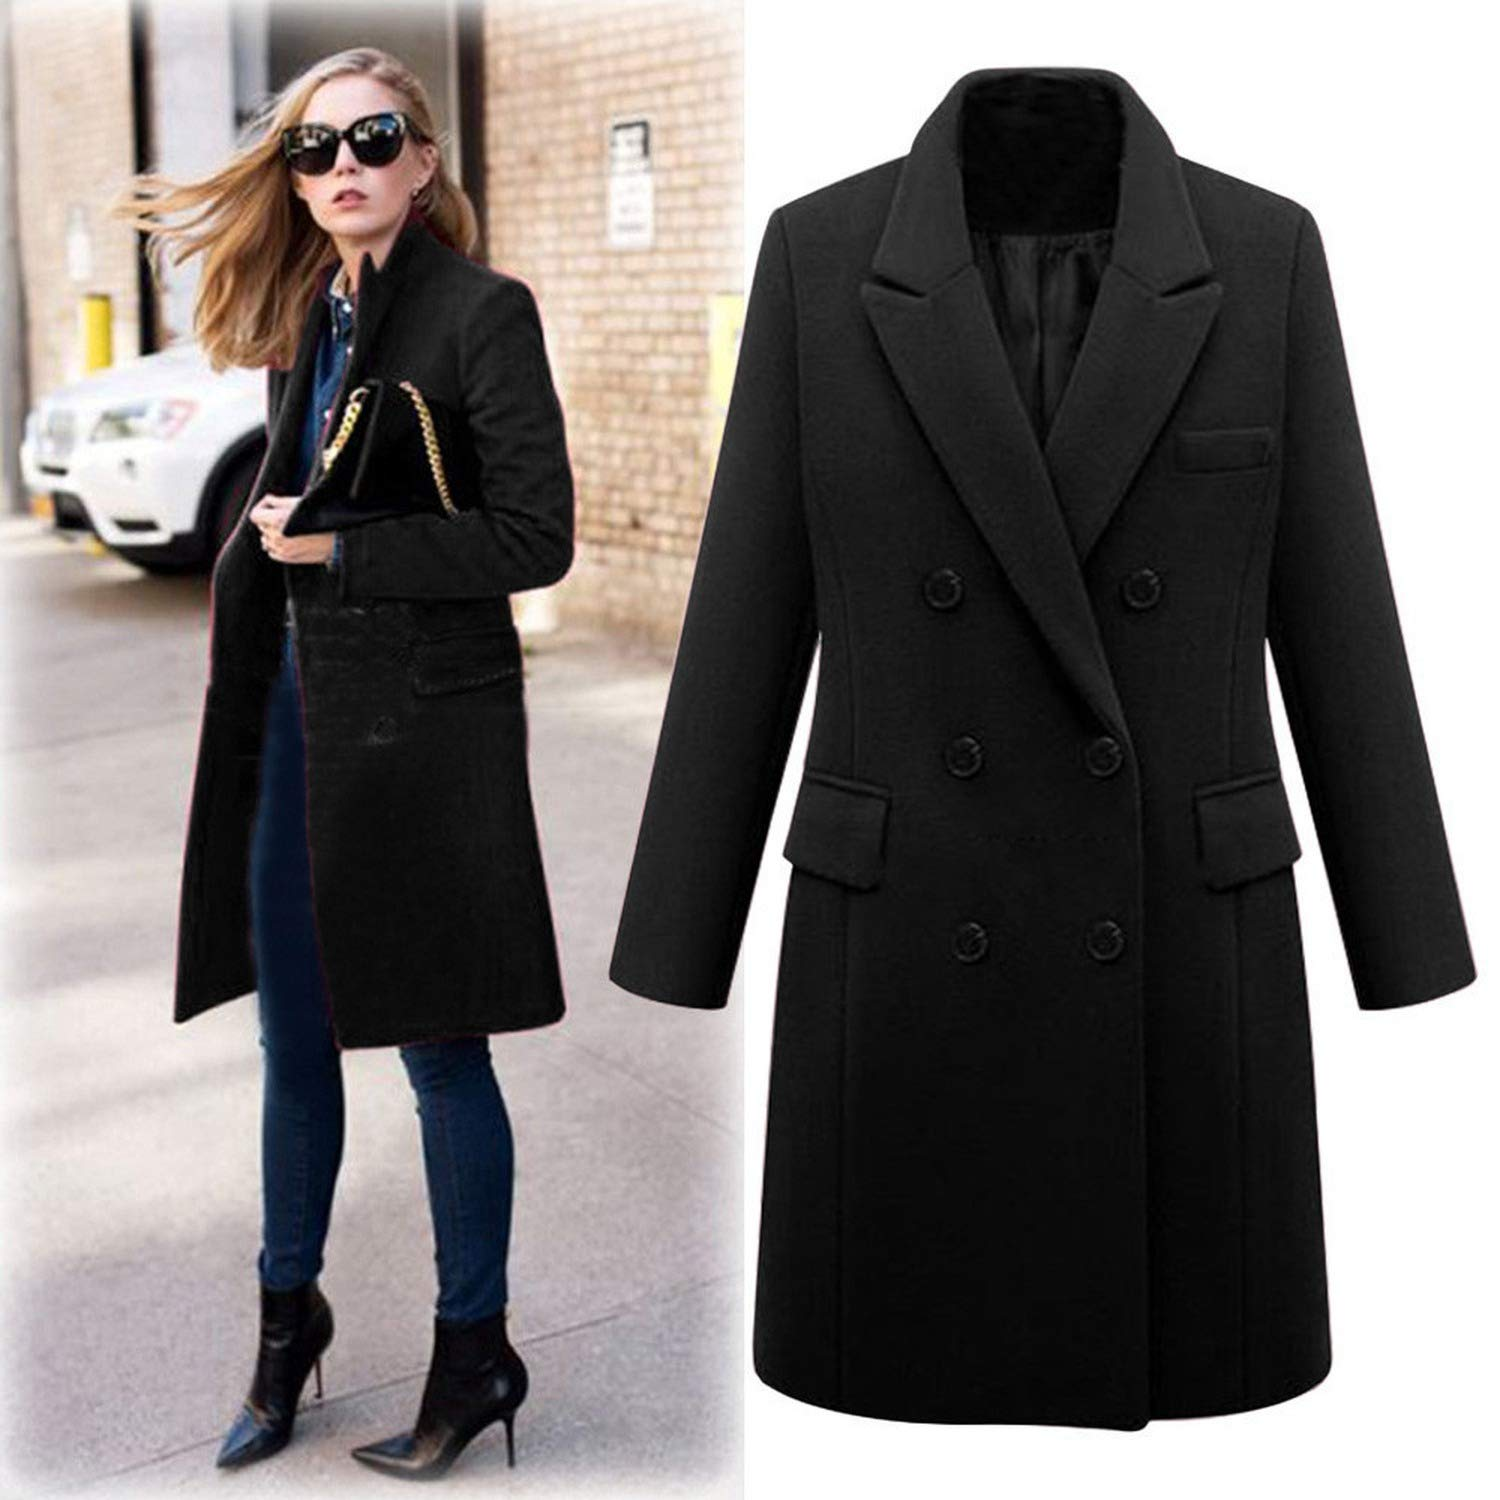 Amazon.com: New Winter Fashion Womens Wool Coat Double Breasted Coat Elegant Bodycon Cocoon Wool Long Coat: Clothing